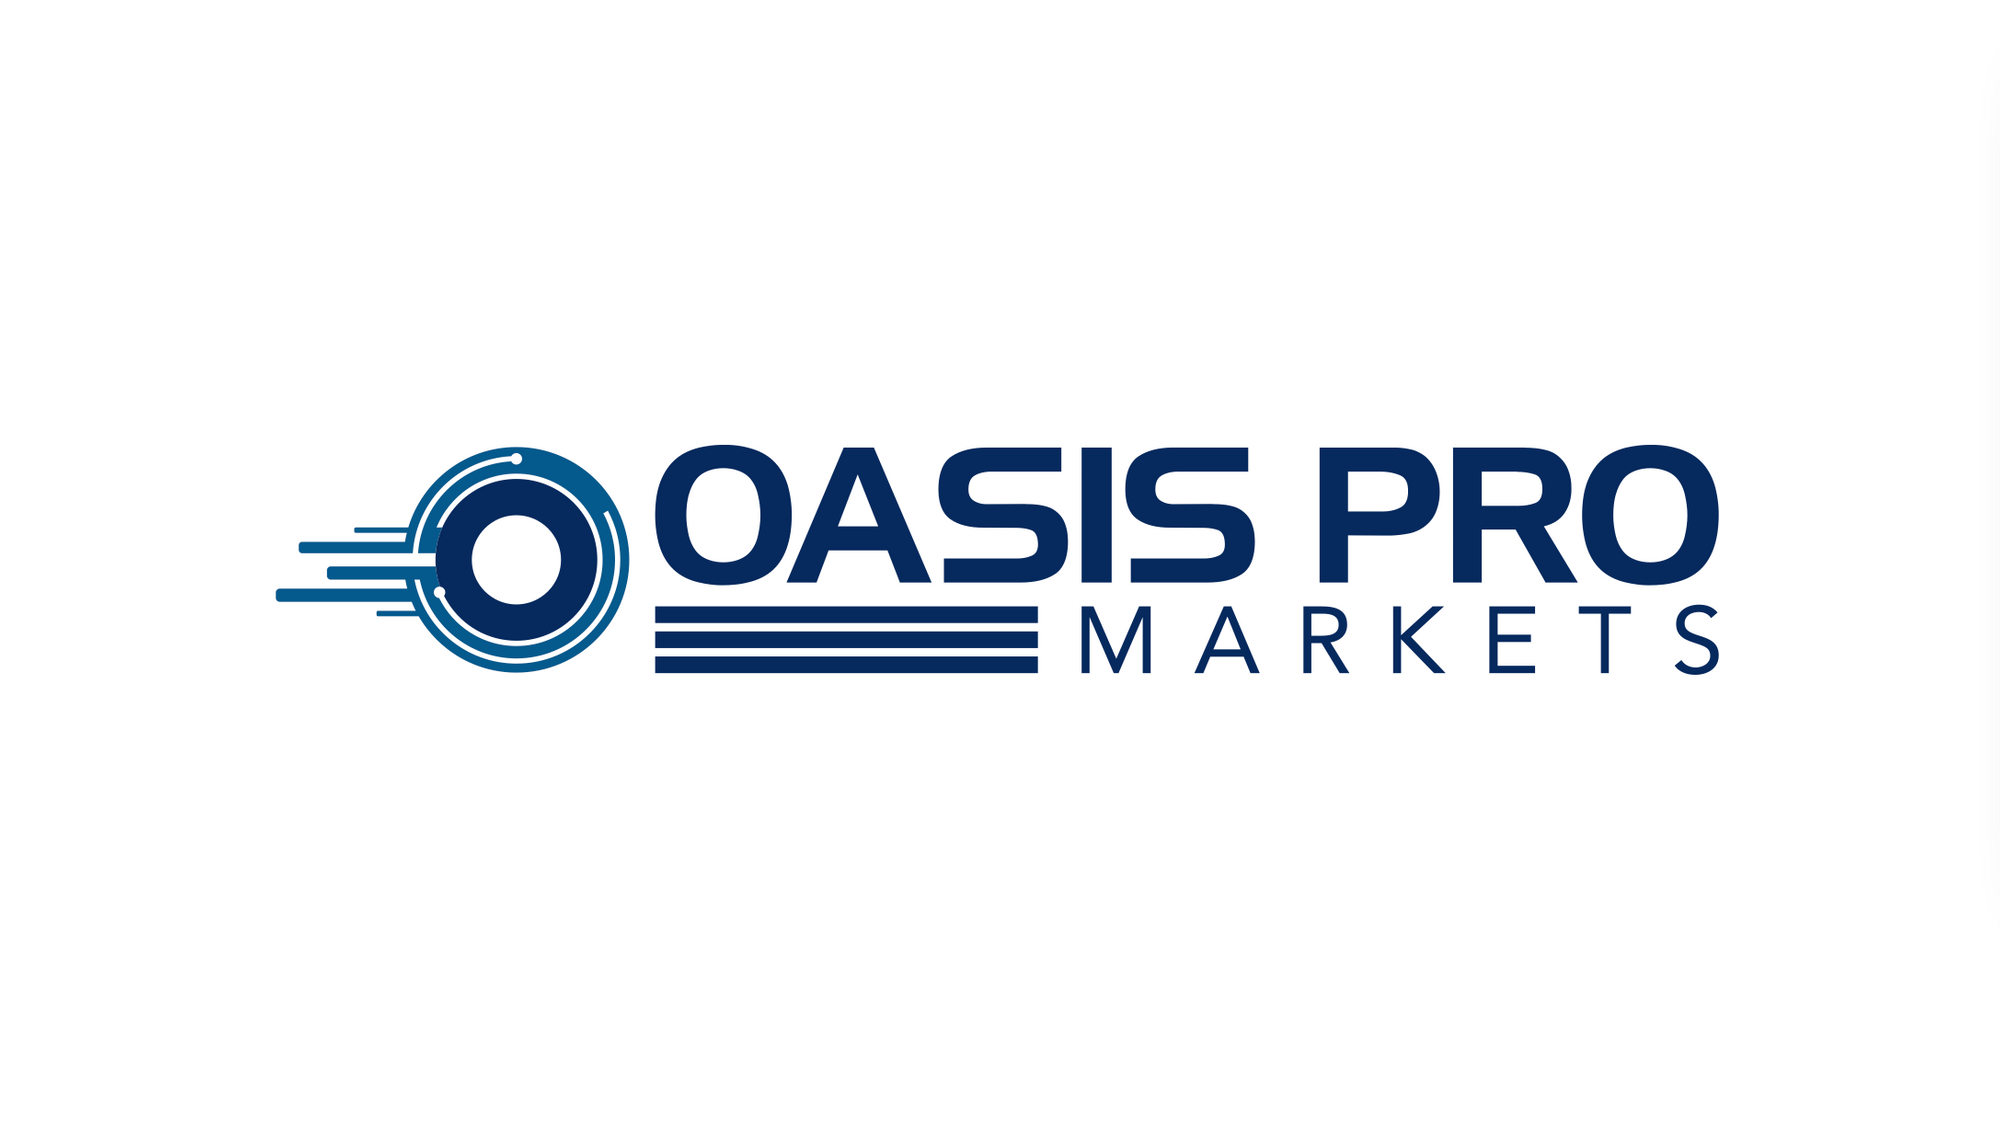 Oasis Pro Markets x Chicago Blockchain Real Estate Collective